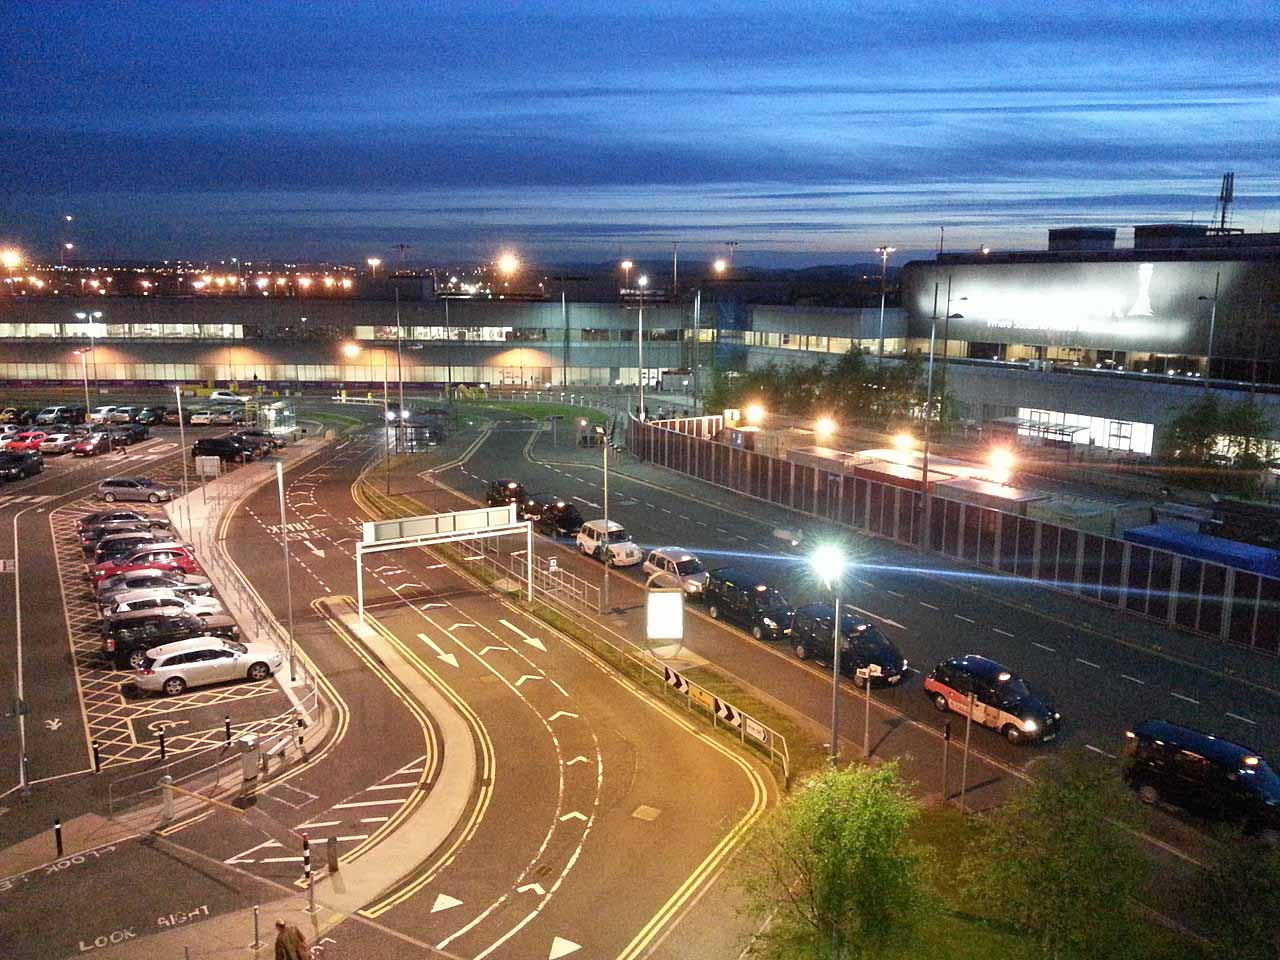 Edinburgh Airport - Taxi rank - Aeroporto Edimburgo